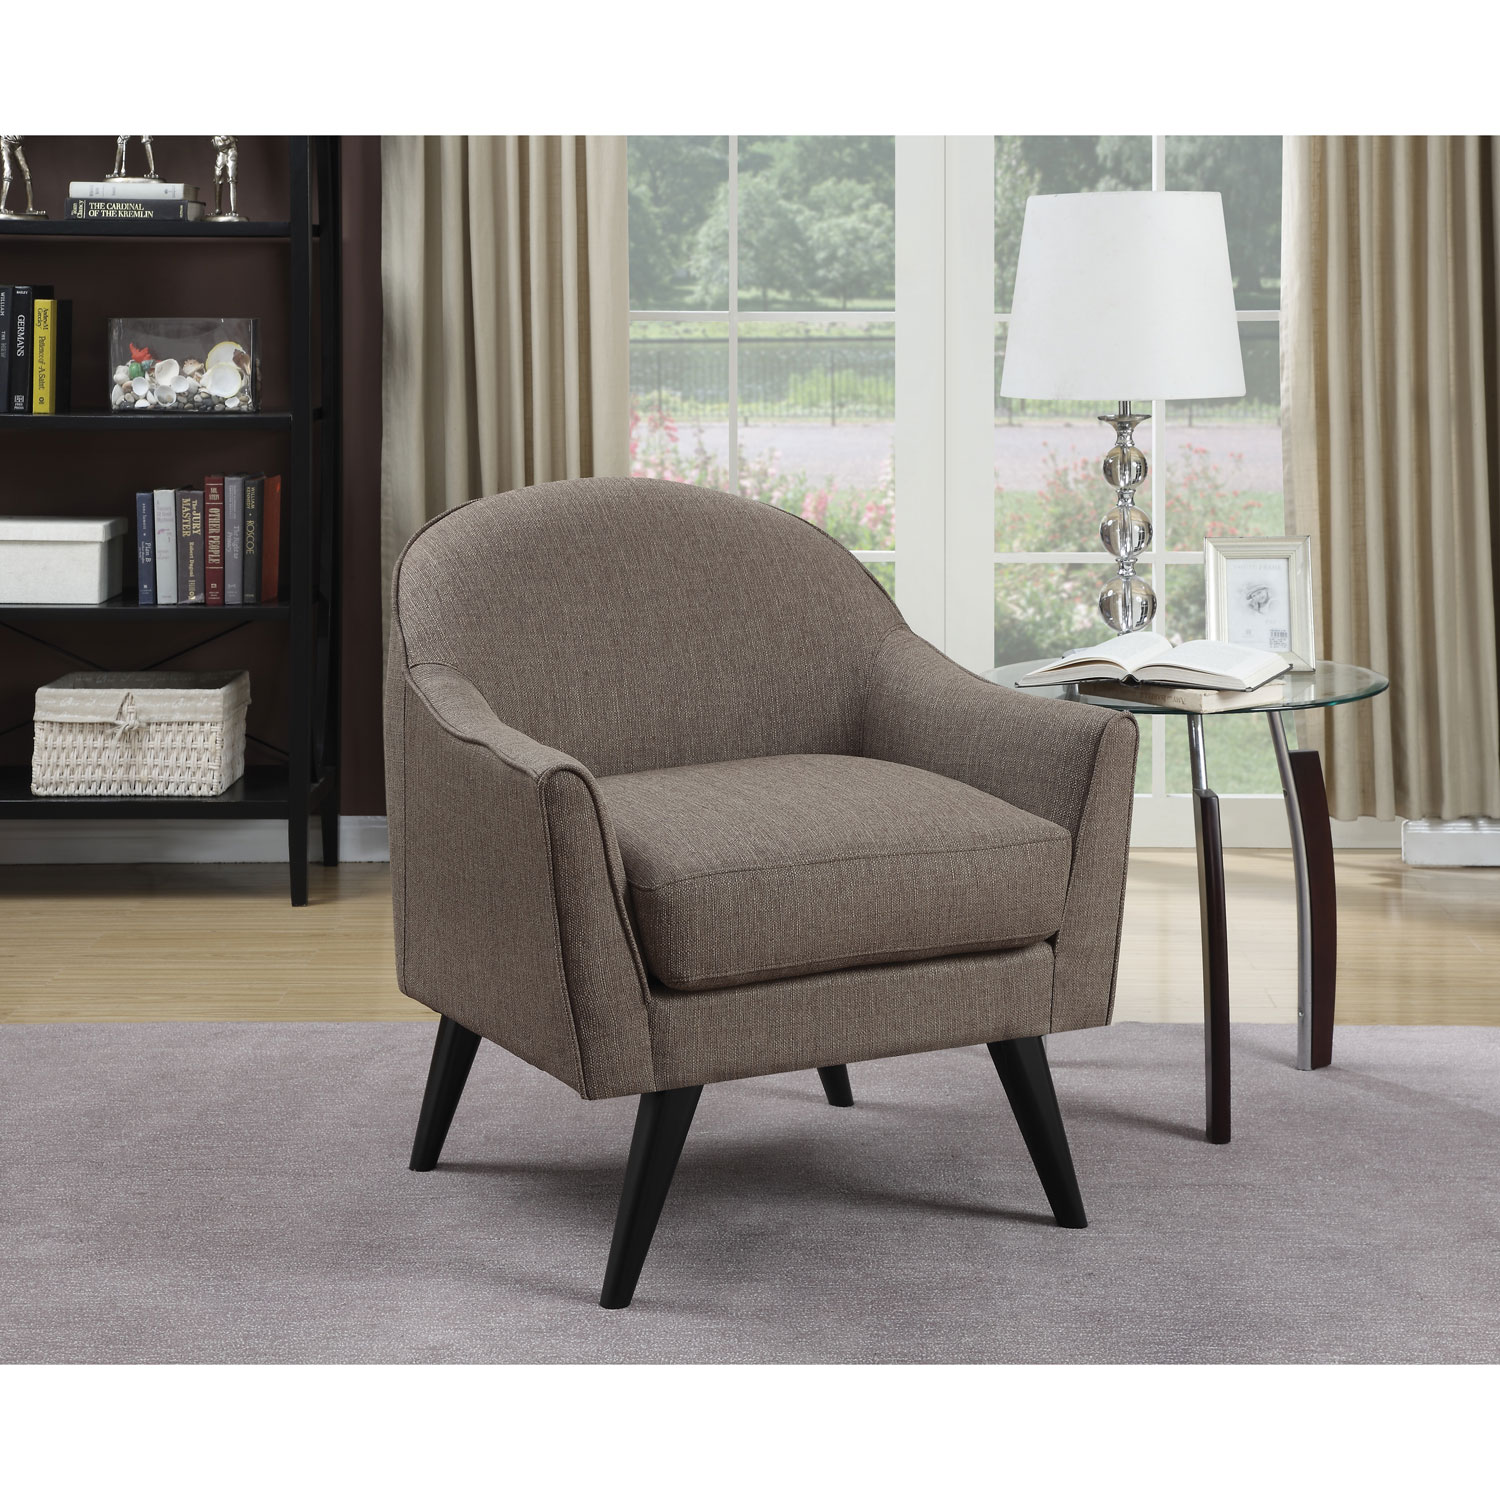 Casana Contemporary Polyester Accent Chair Brown Accent Chairs